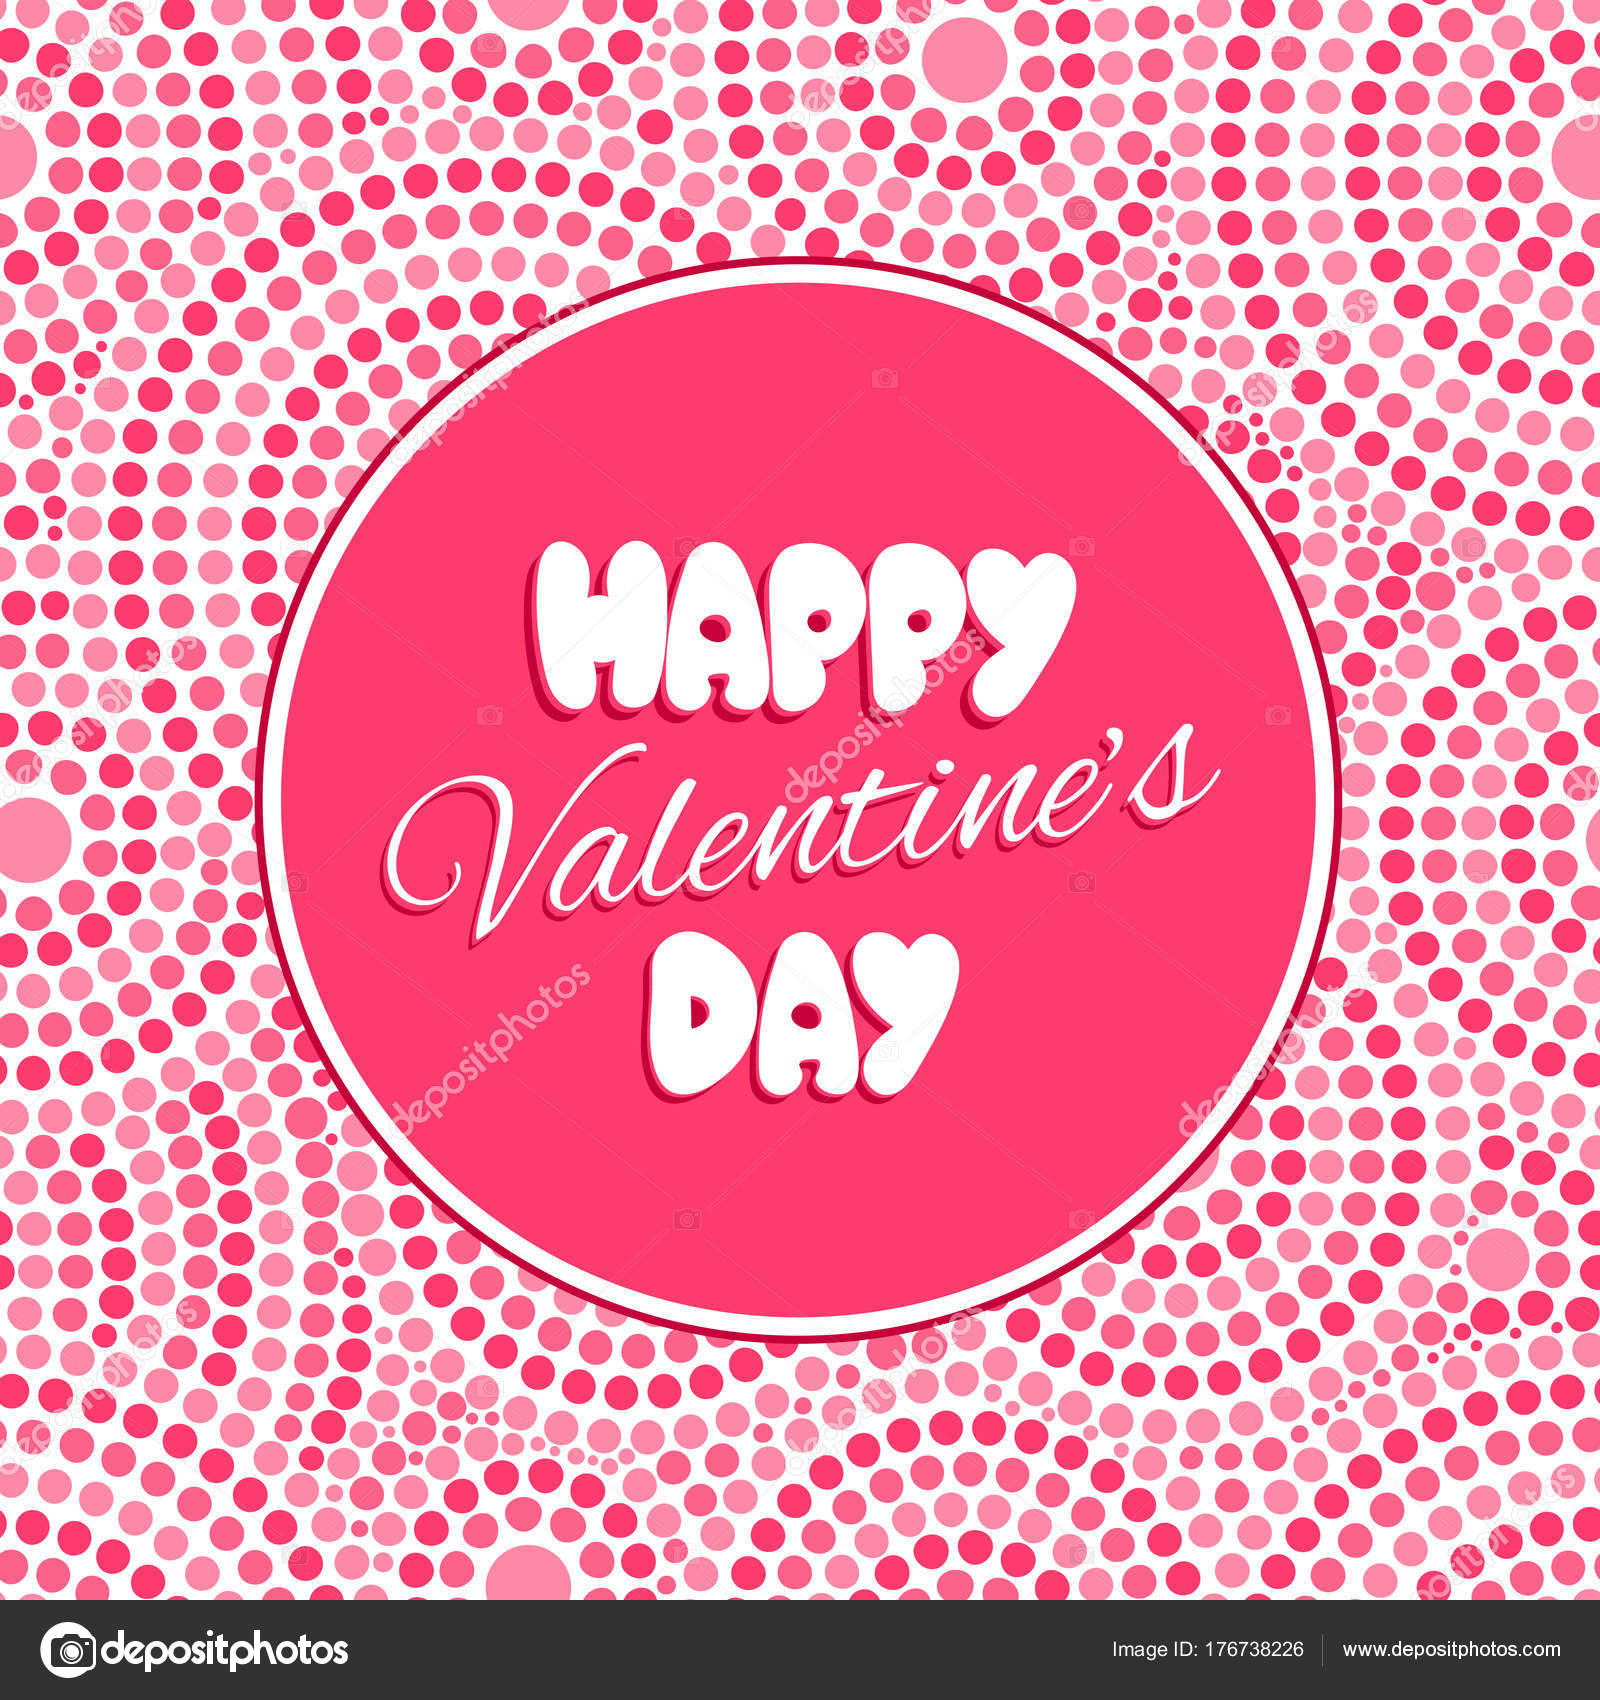 Valentine Day Card Template Vecteur Image Vectorielle Irinelle